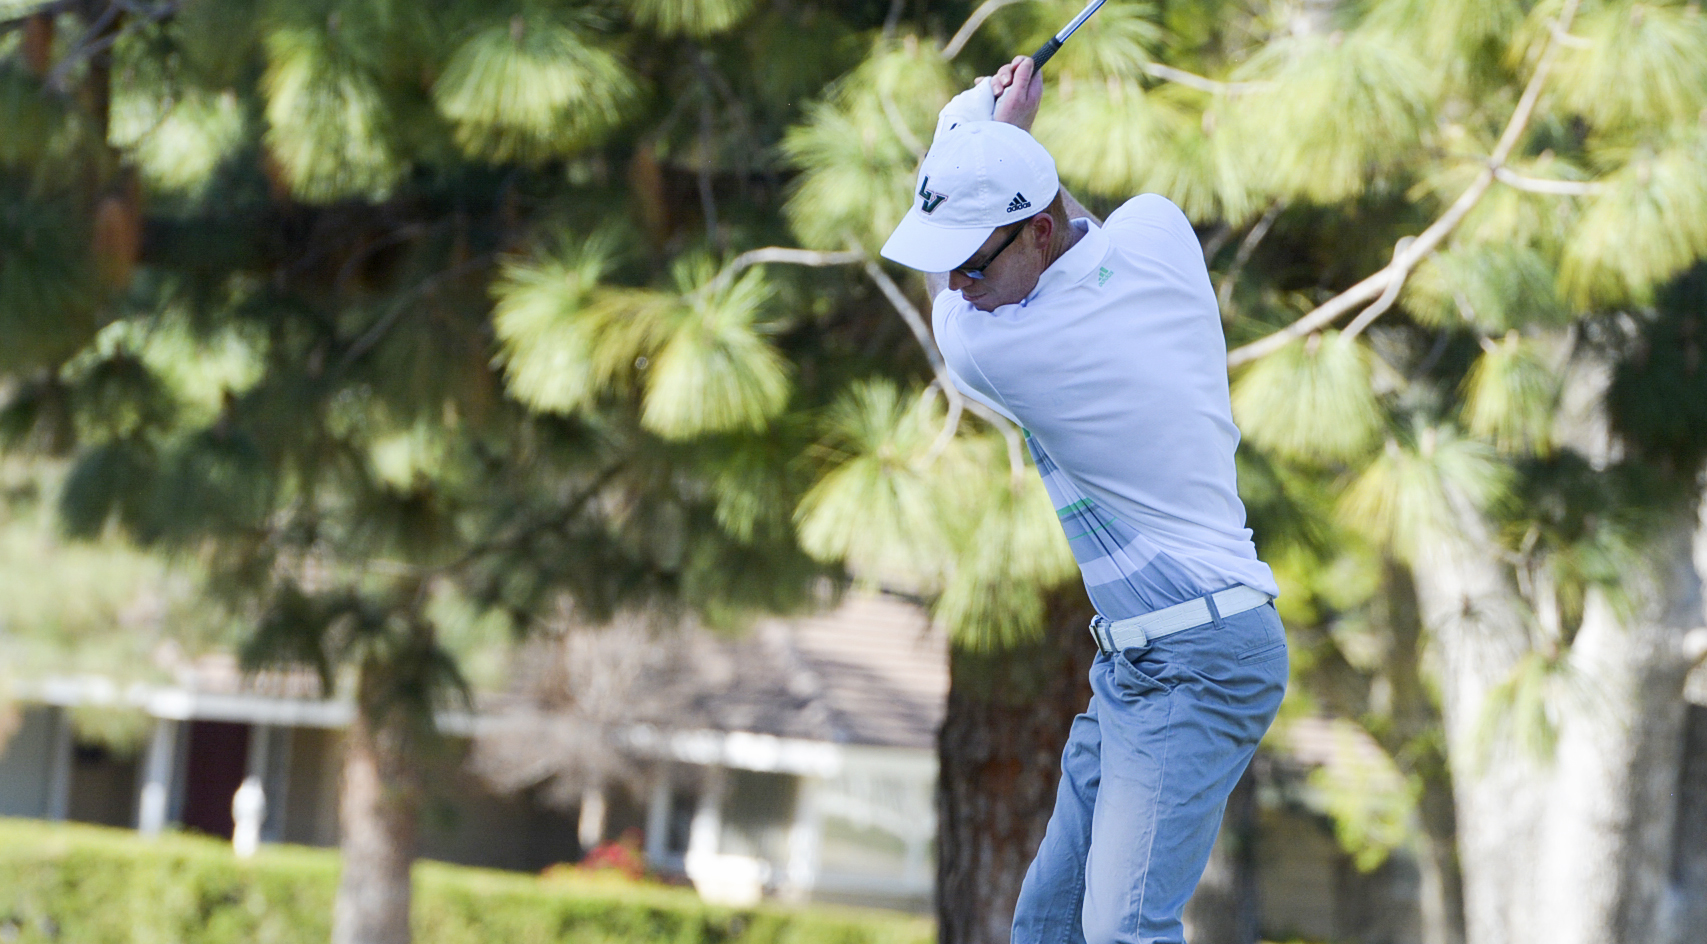 Men's Golf falls just short against No. 3 Claremont-Mudd-Scripps